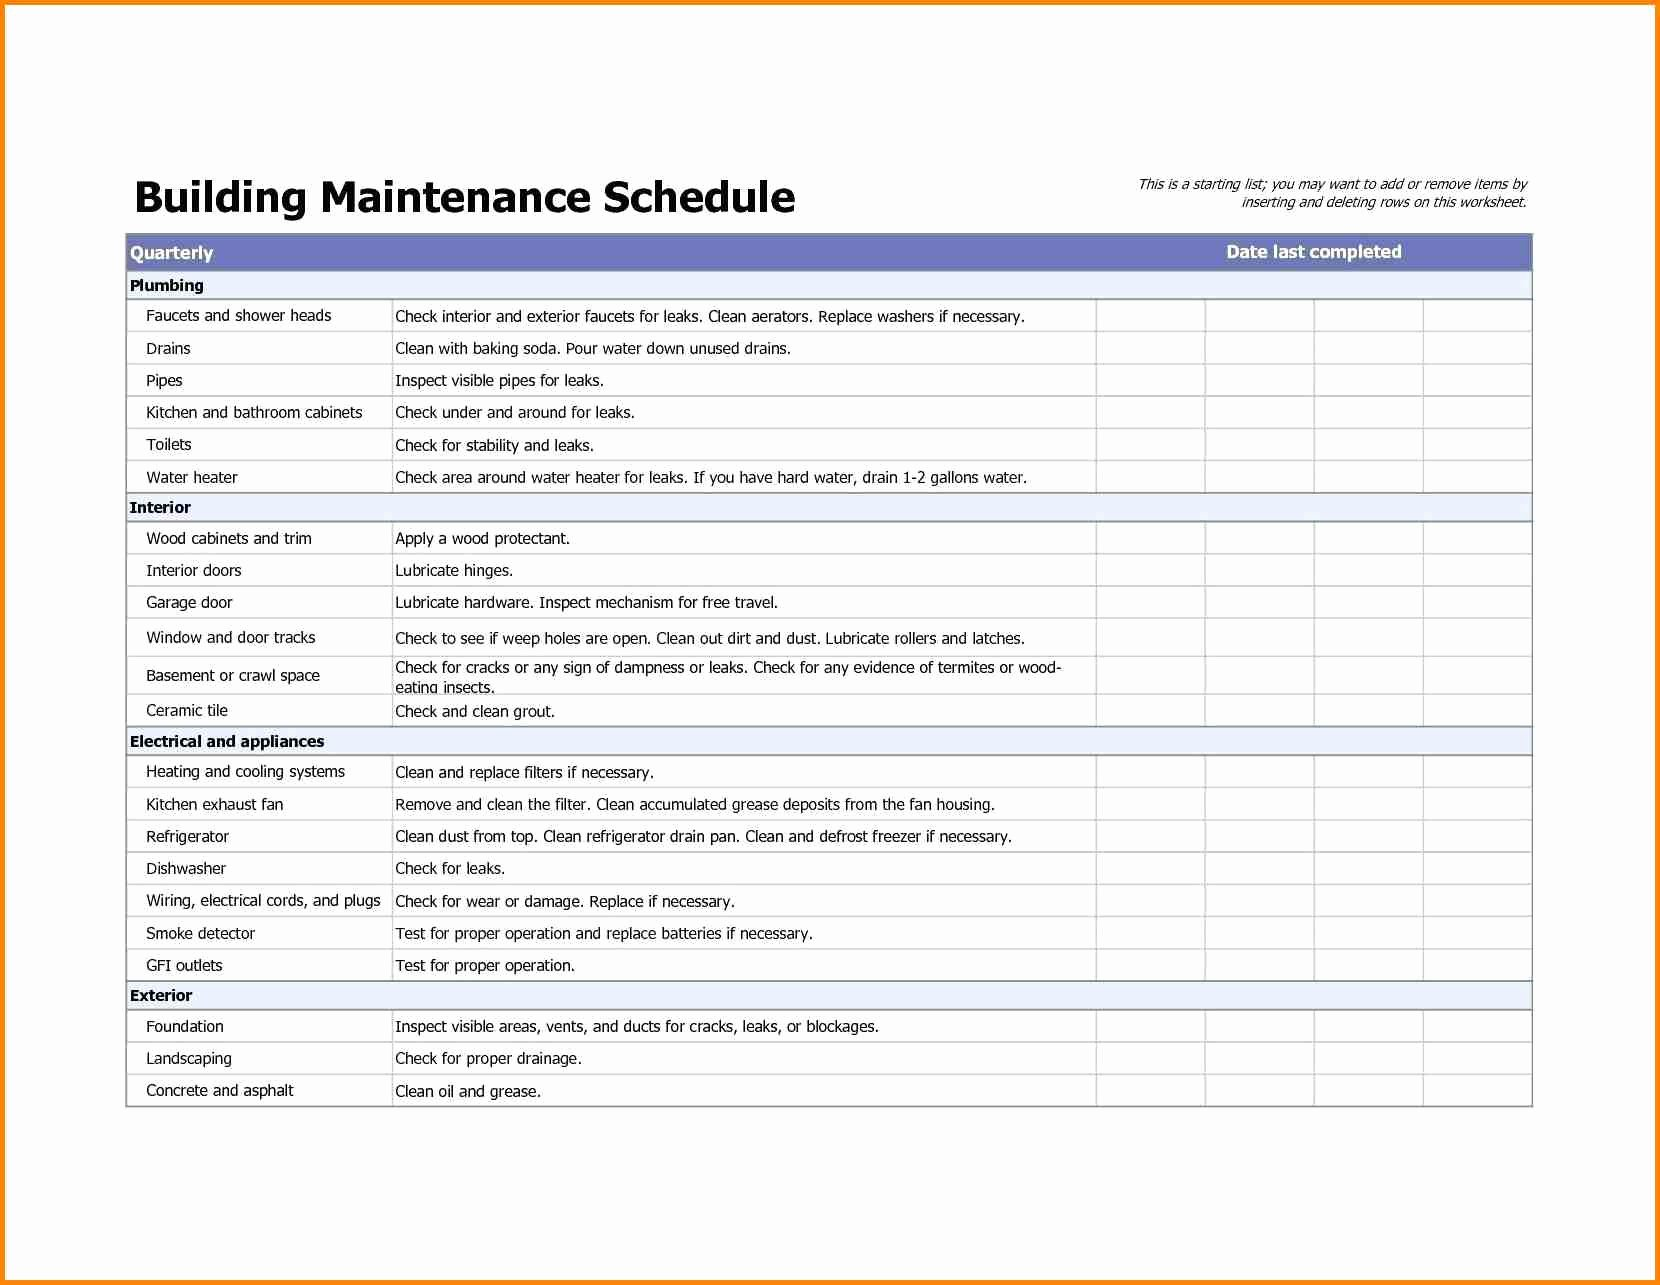 Preventive Maintenance Checklist Template Elegant Building Maintenance Checklists – Emmamcintyrephotography